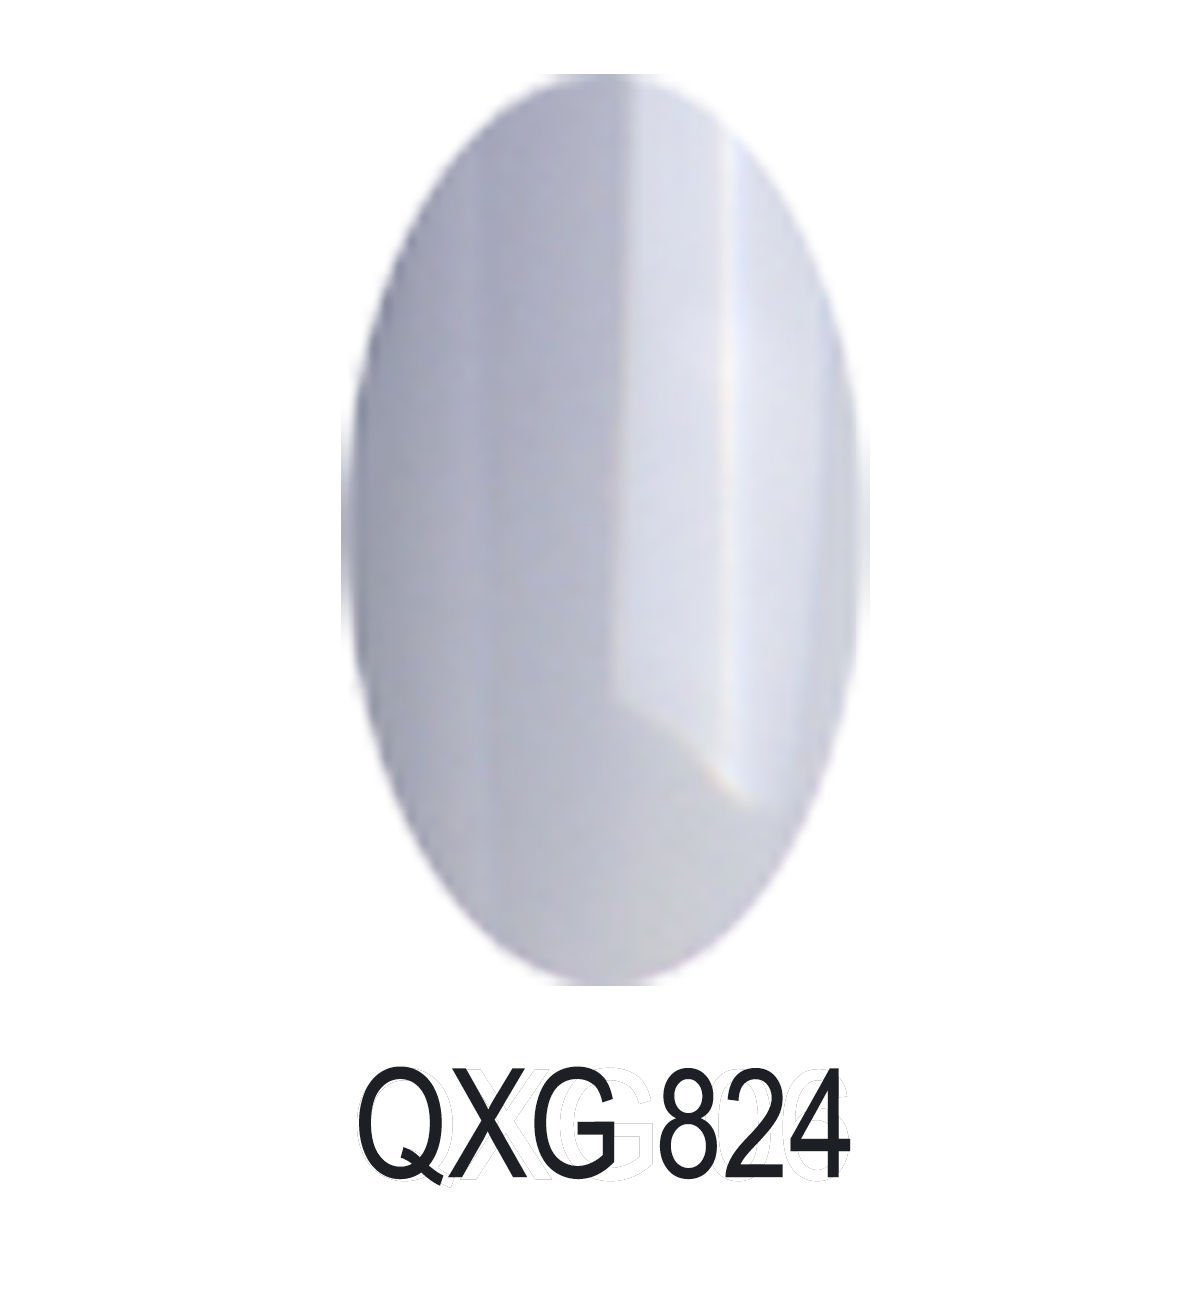 Bluesky Limited Edition UV/LED Soak Off Gel Nail Polish Number QXG 824, Light Grey 10 ml Bluesky QXG824